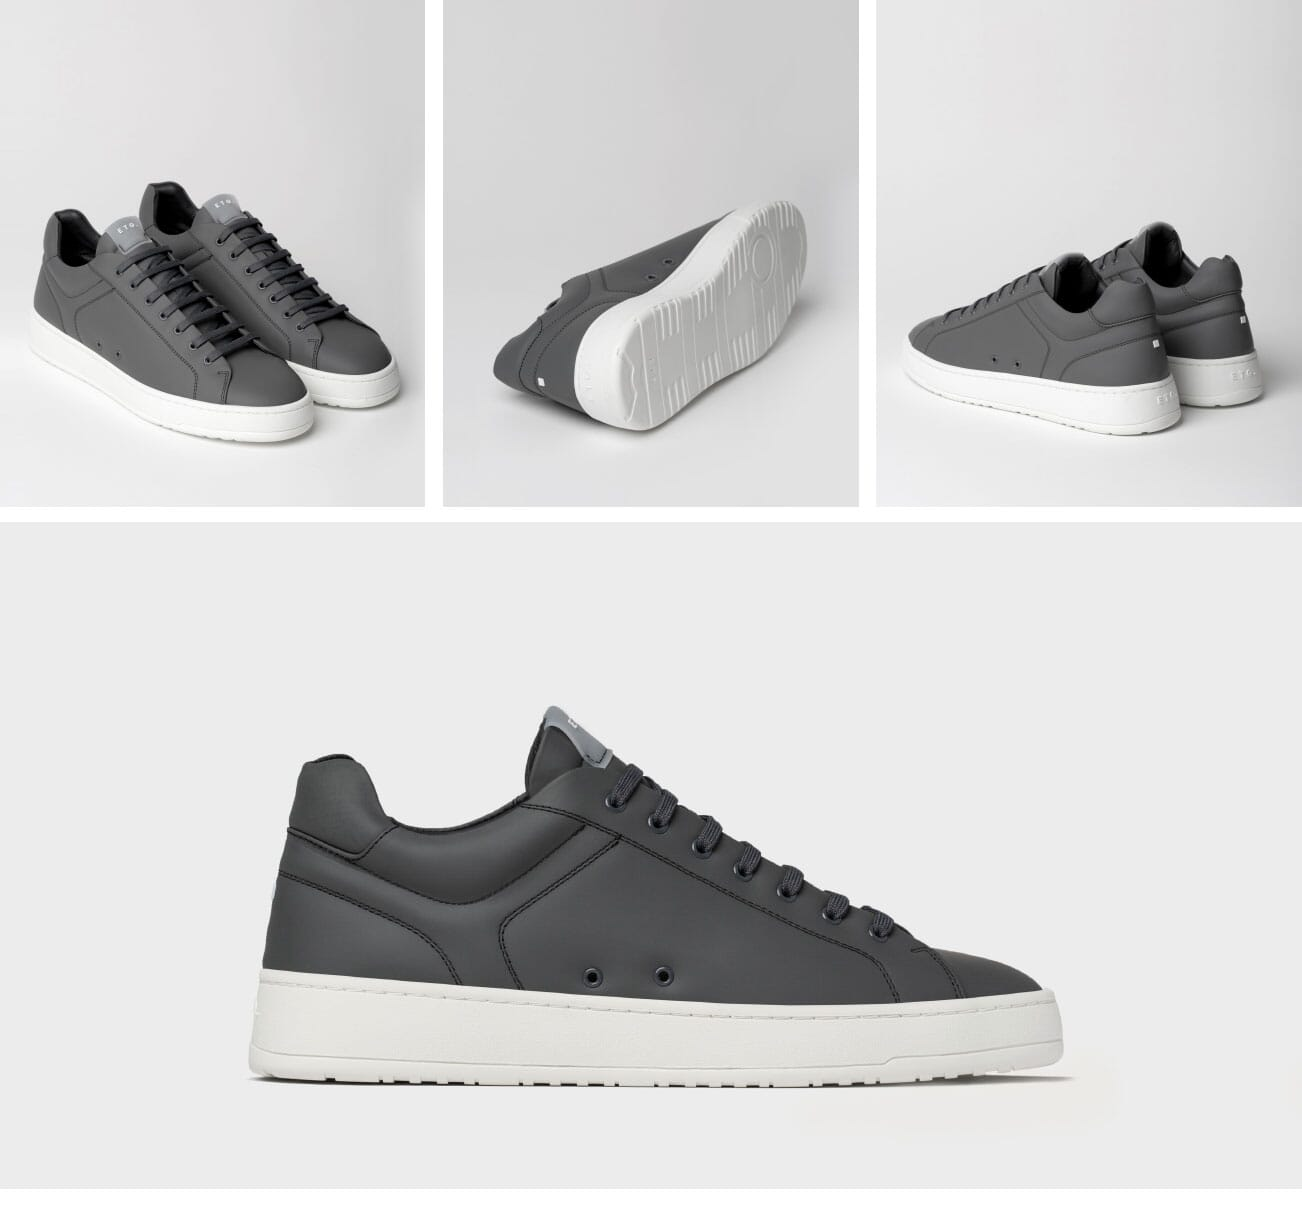 best sneakers for the rain